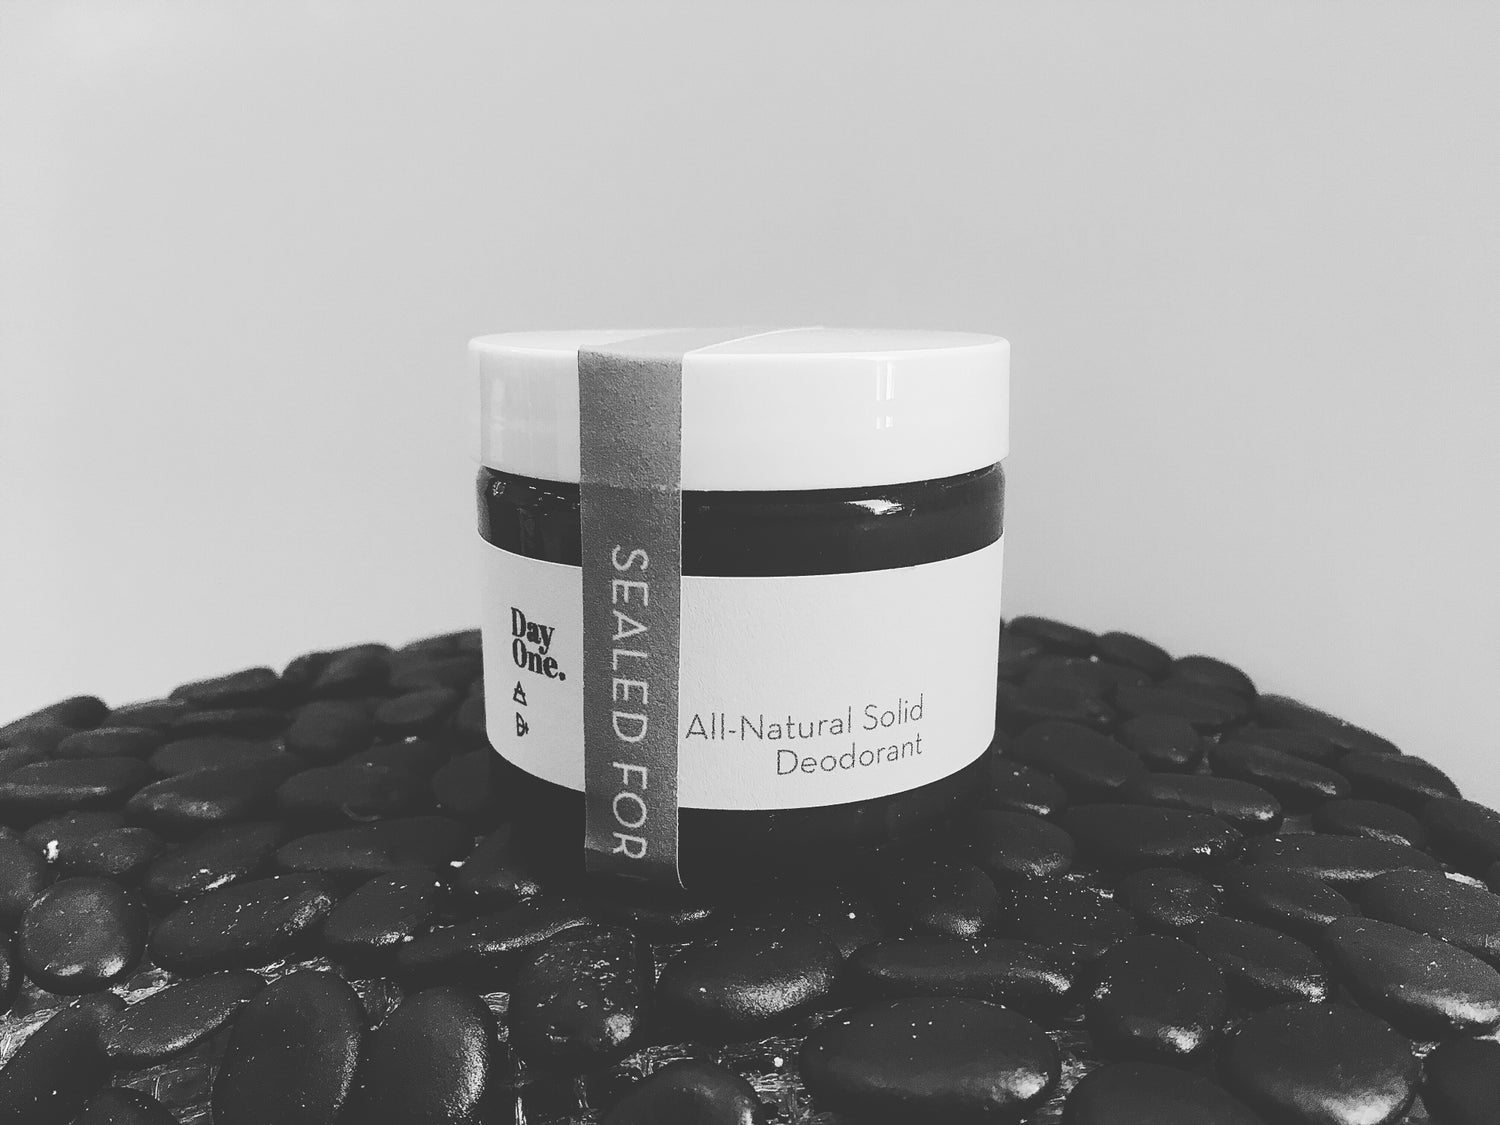 Image of All-Natural Solid Deodorant Two-Pack